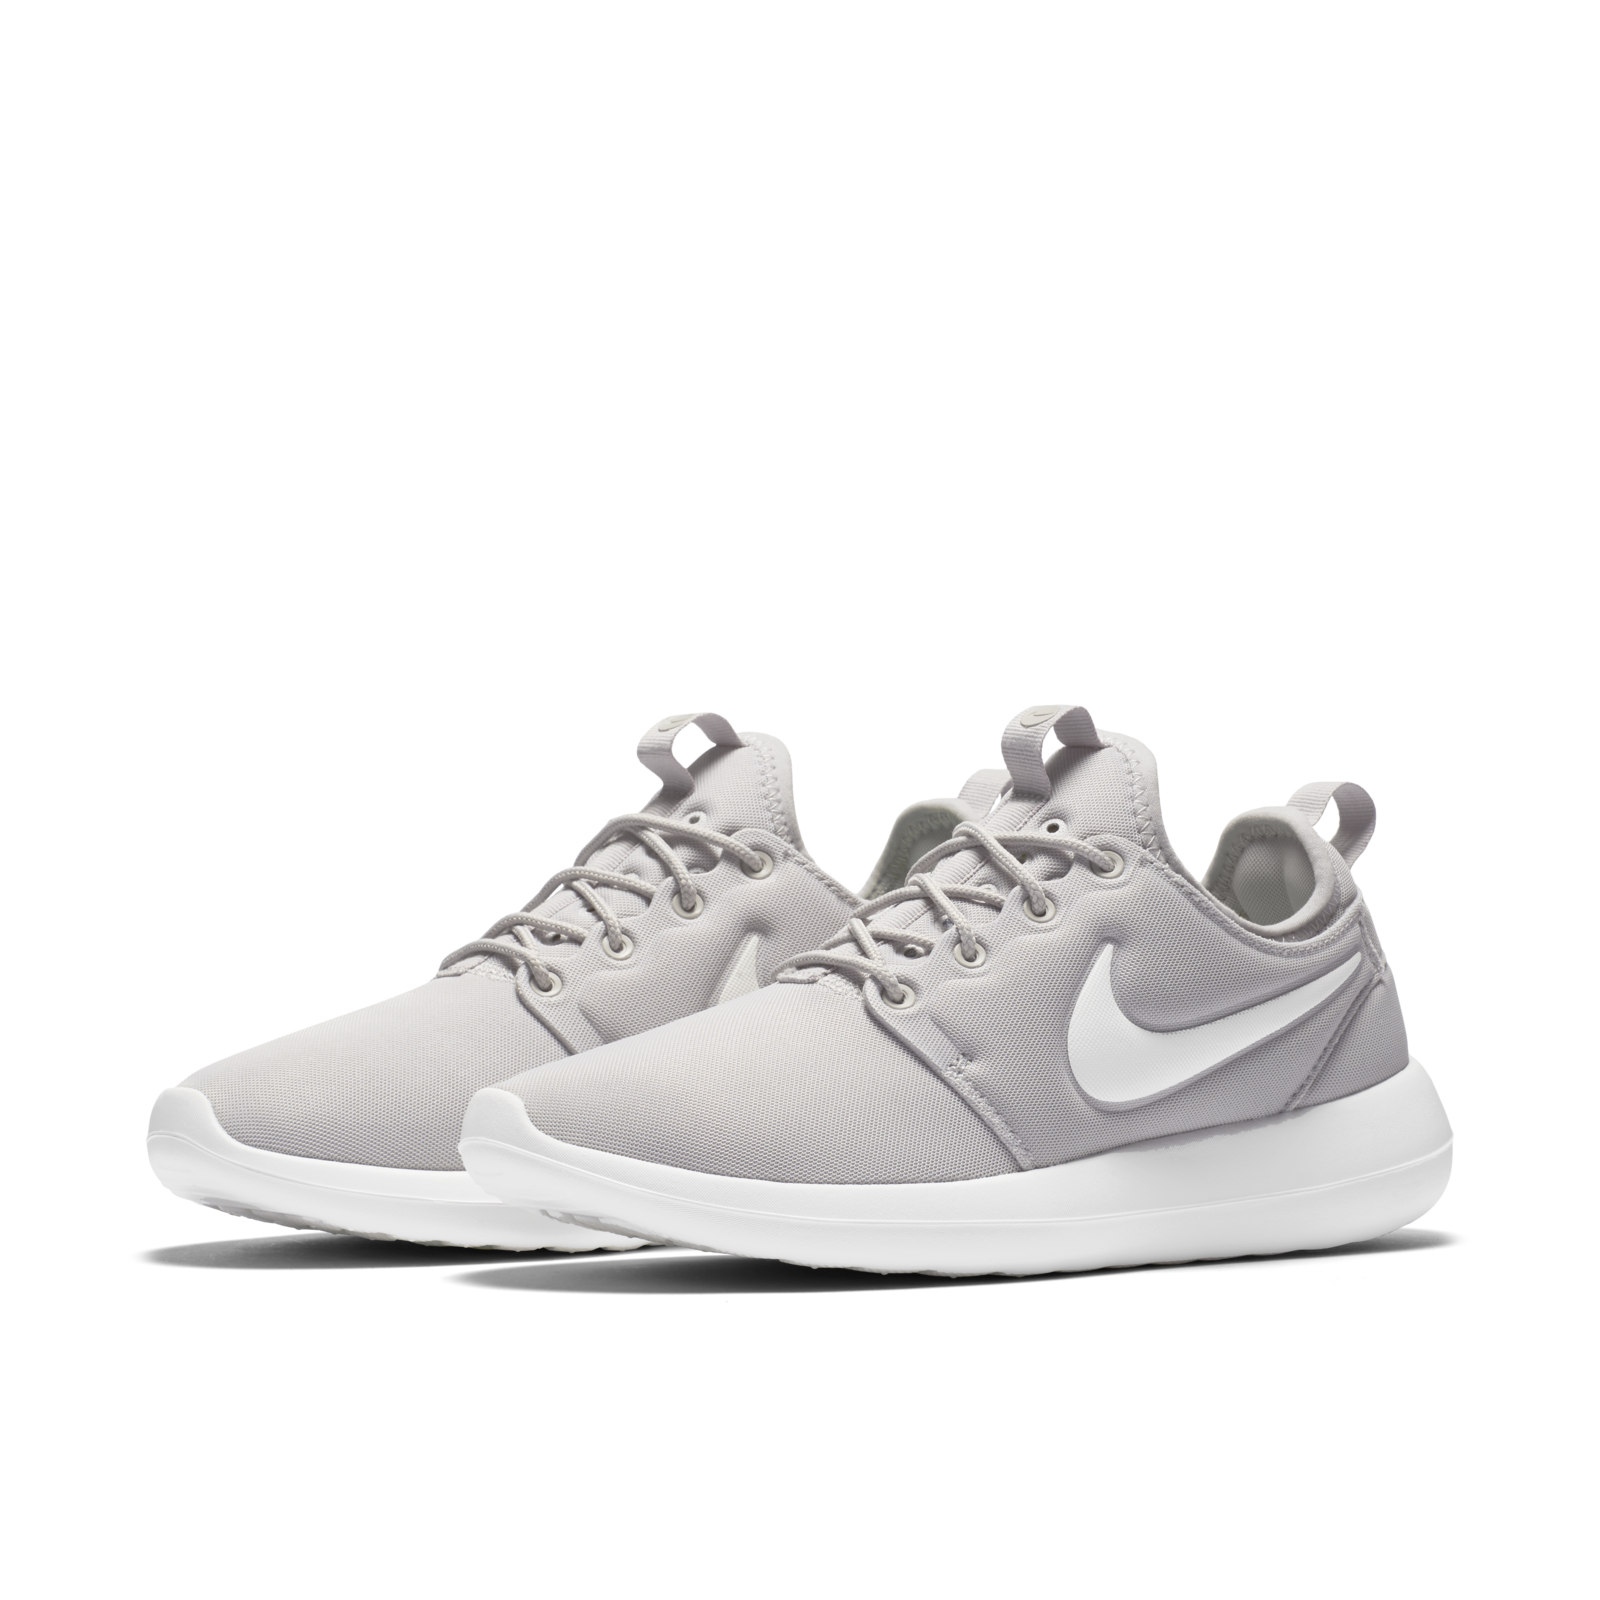 quality design c6d1b 8d57f Chaussure Nike Roshe Two Flyknit Hi pour Femme. Nike FR